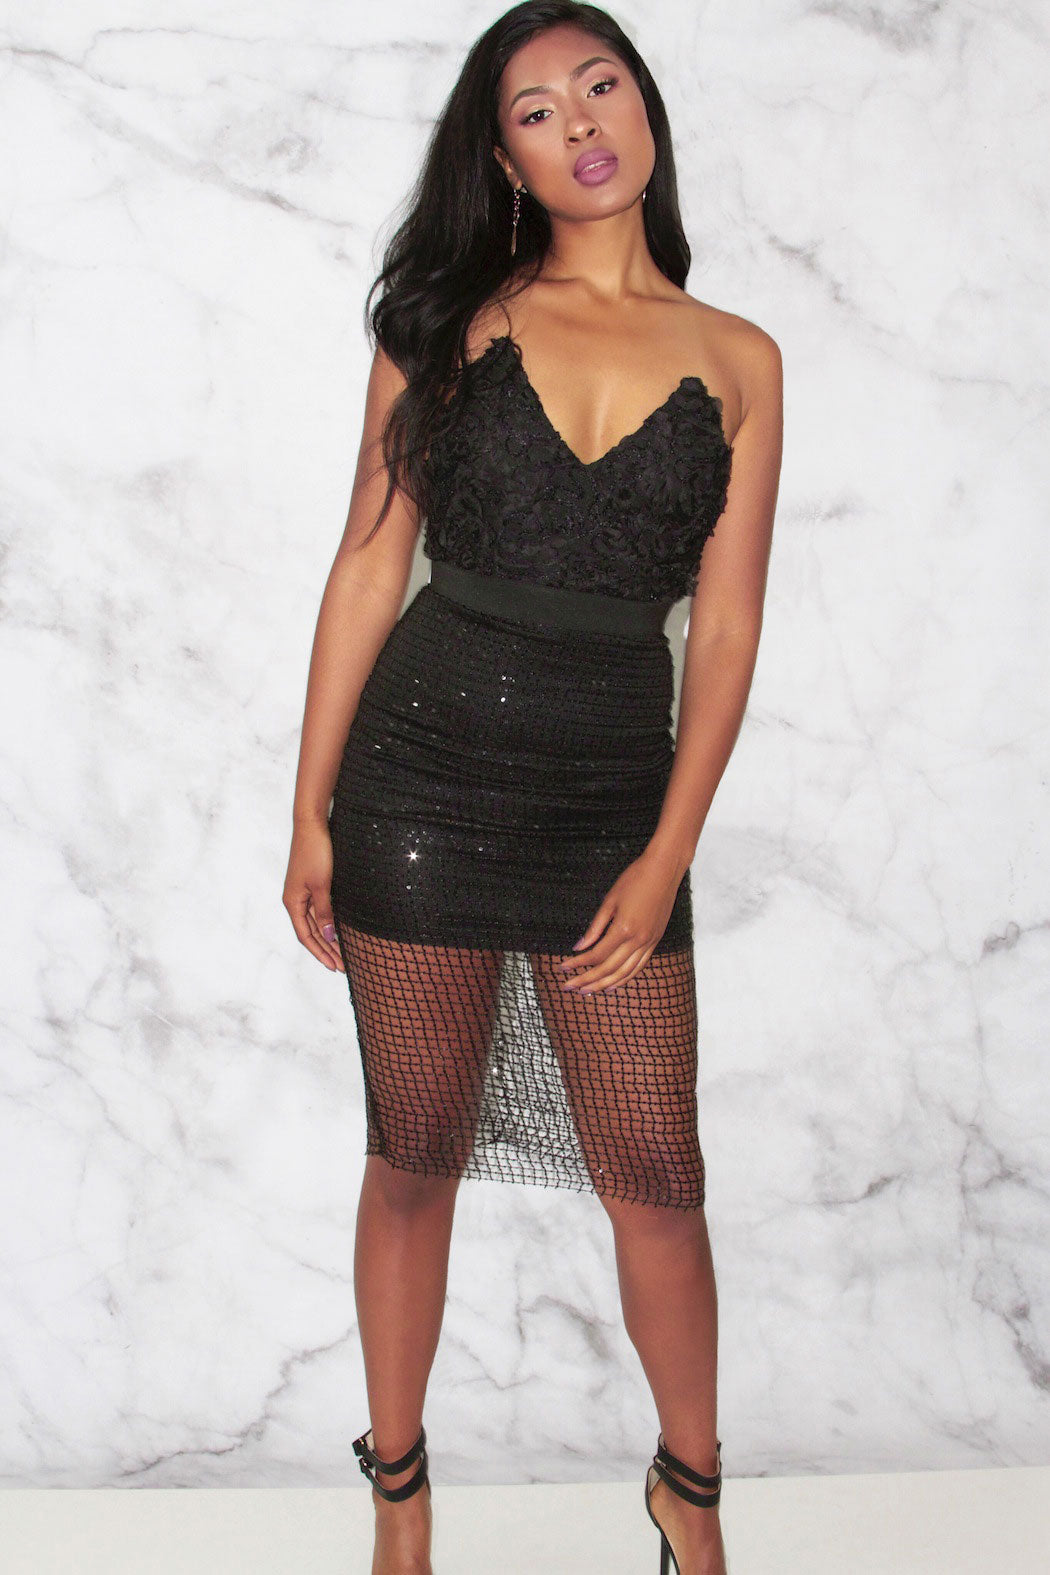 Rare London Limited Edition Textured Cage Bustier Dress - Snatched